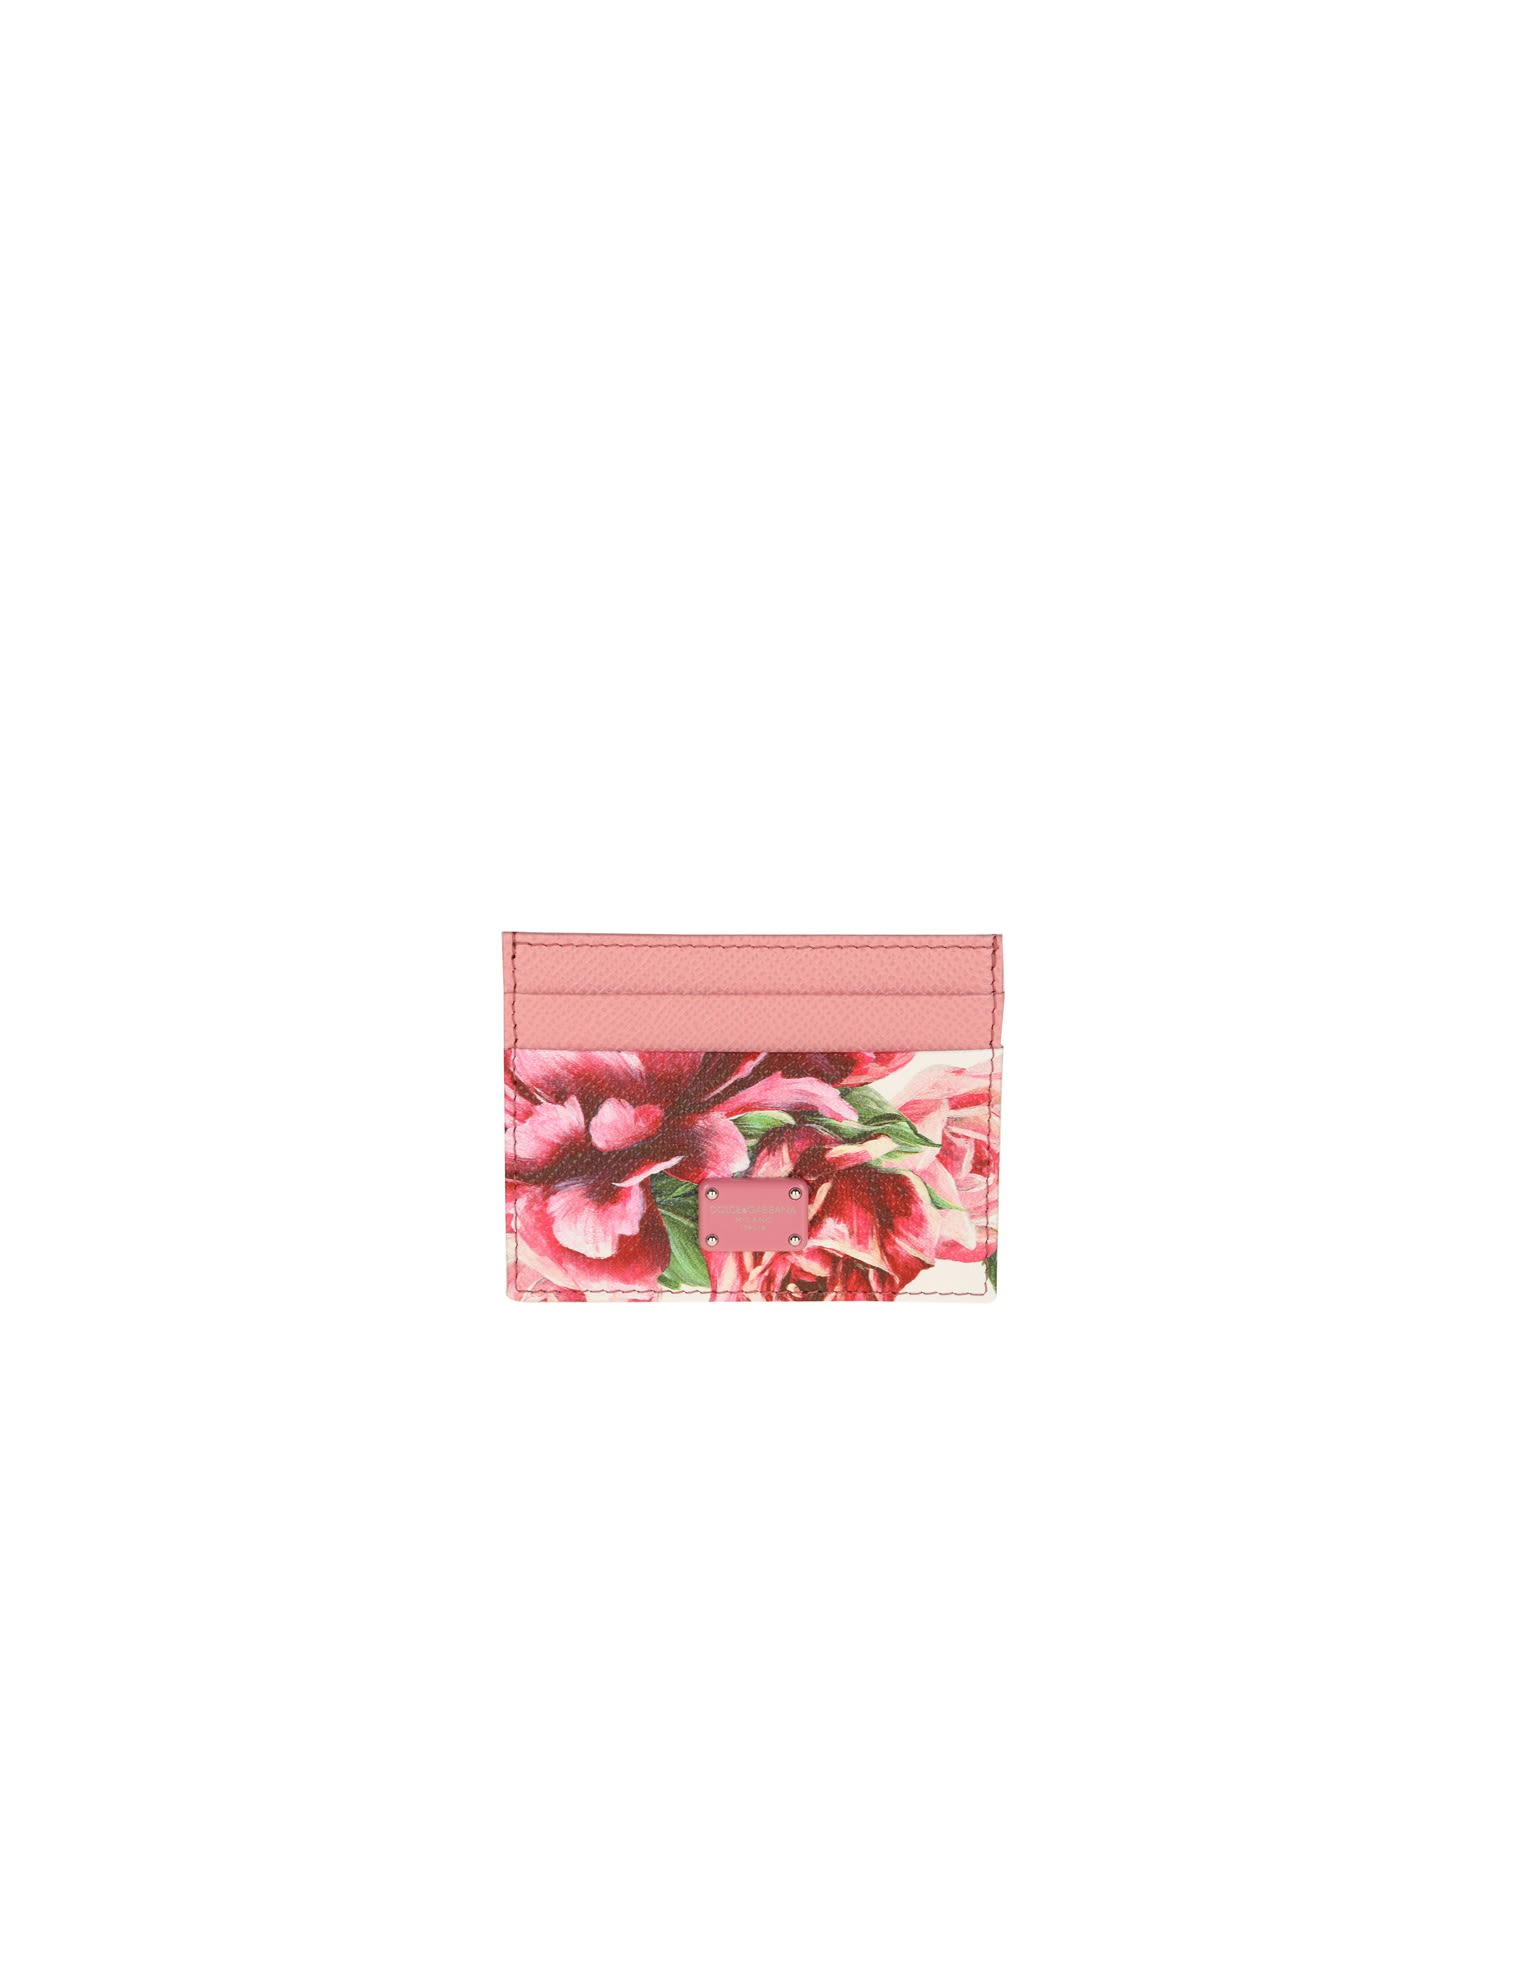 DOLCE & GABBANA CARD HOLDER IN DAUPHINE CALF WITH FLORAL PRINTING